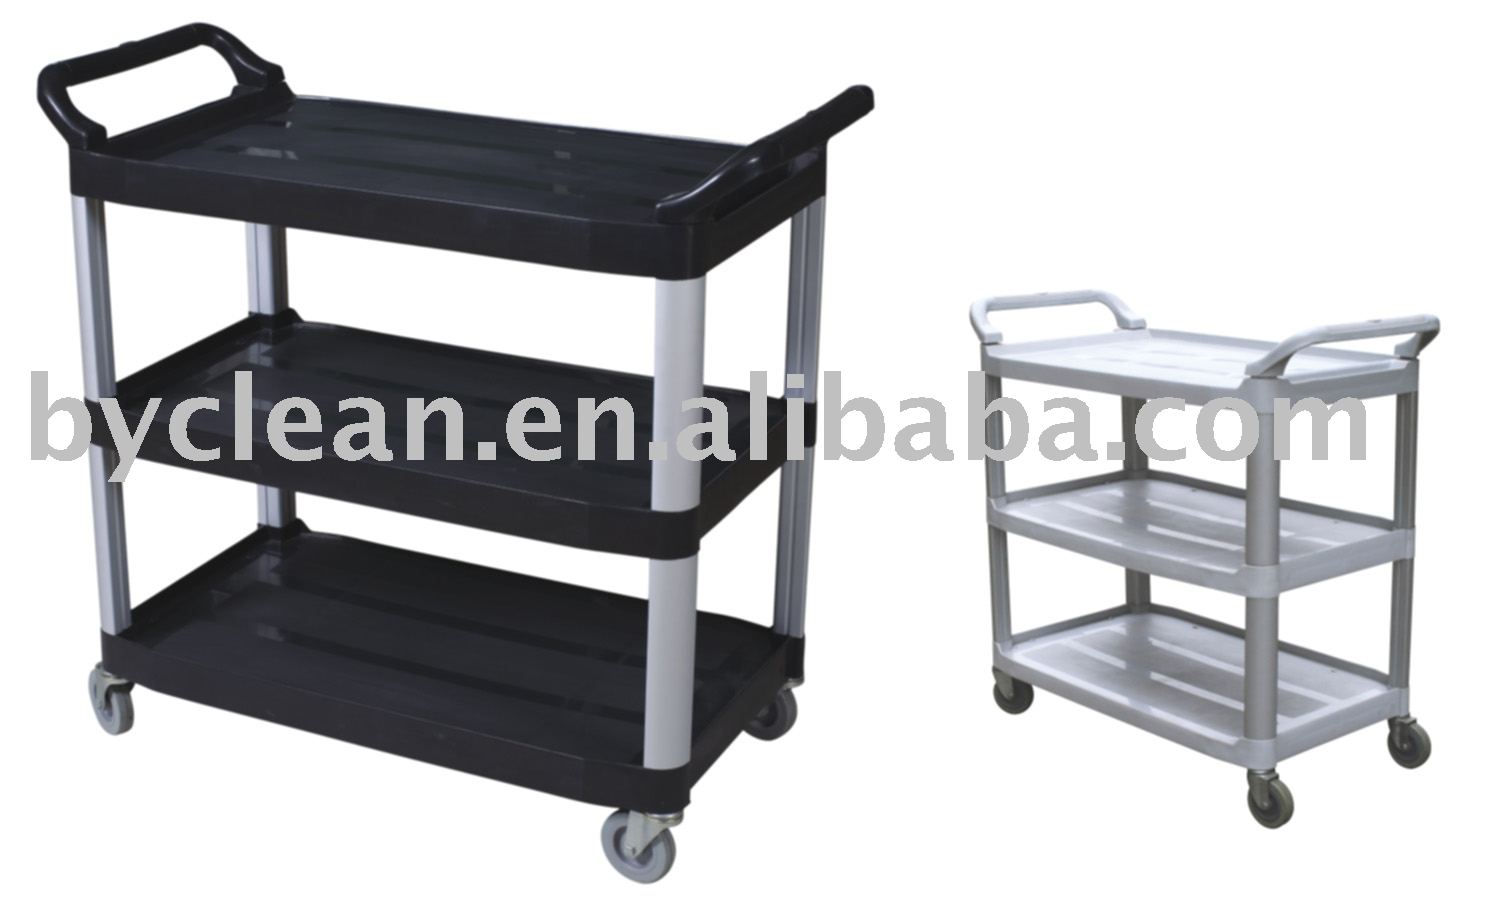 Serving Cart, Serving Cart Suppliers and Manufacturers at Alibaba.com